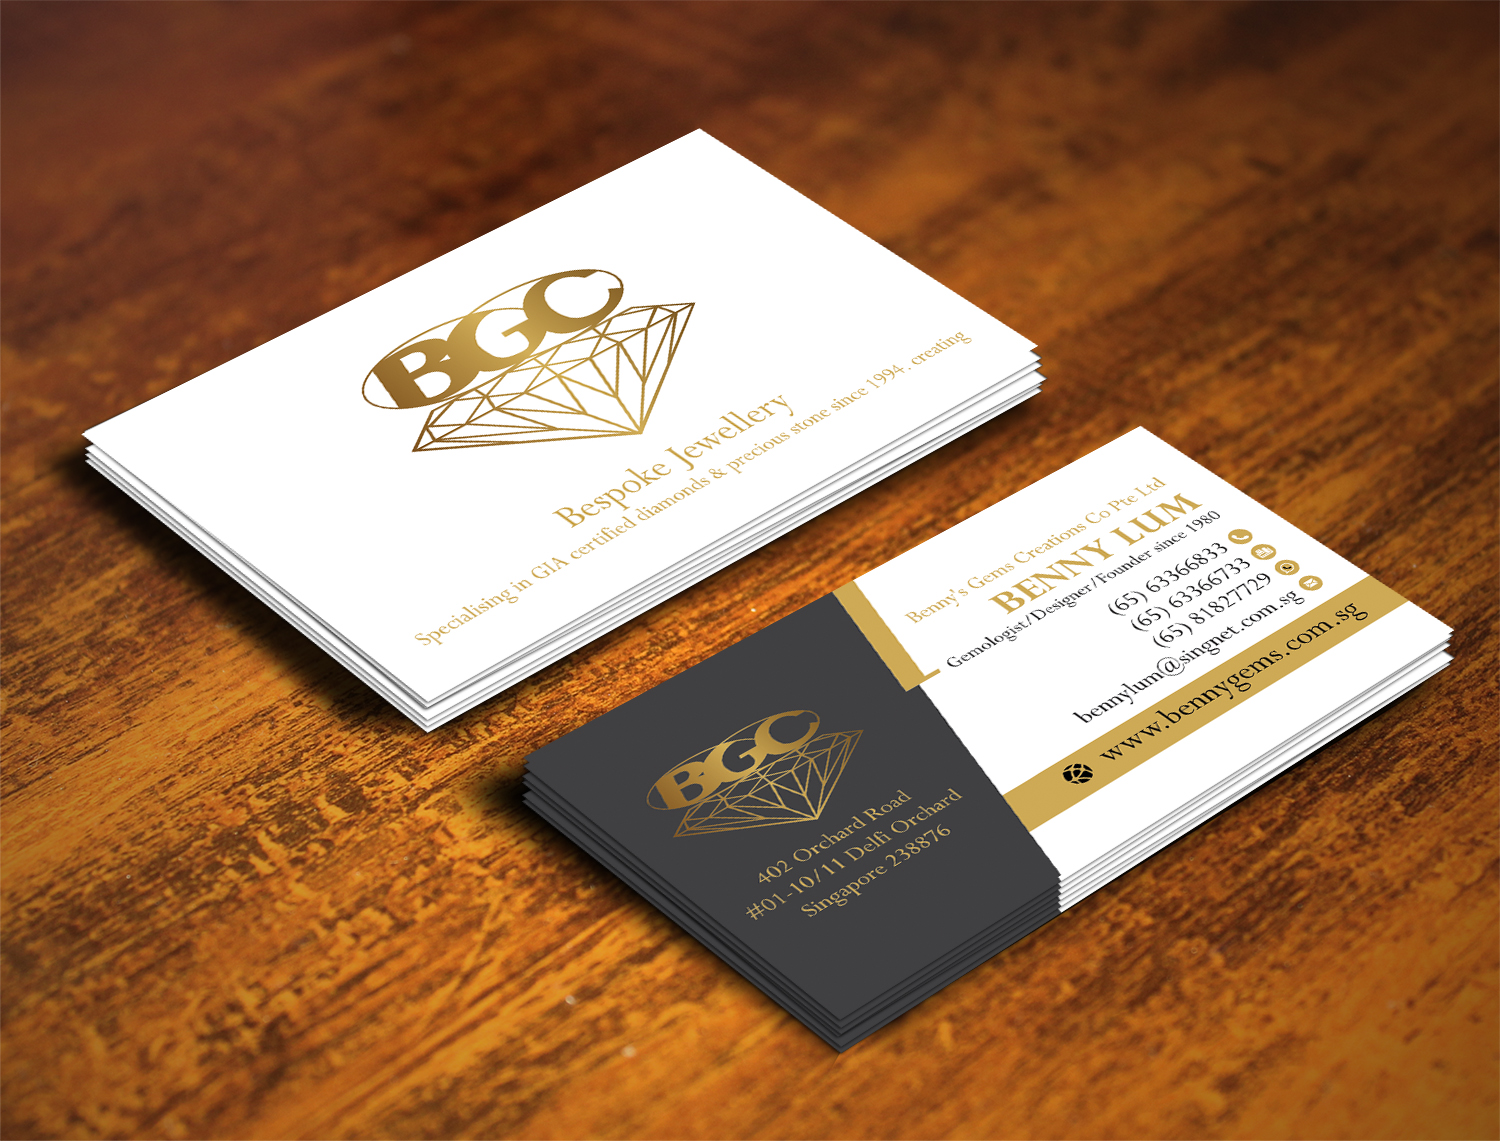 Professional upmarket jewelry store business card design for a business card design by alhemique1 for this project design 12678082 reheart Gallery